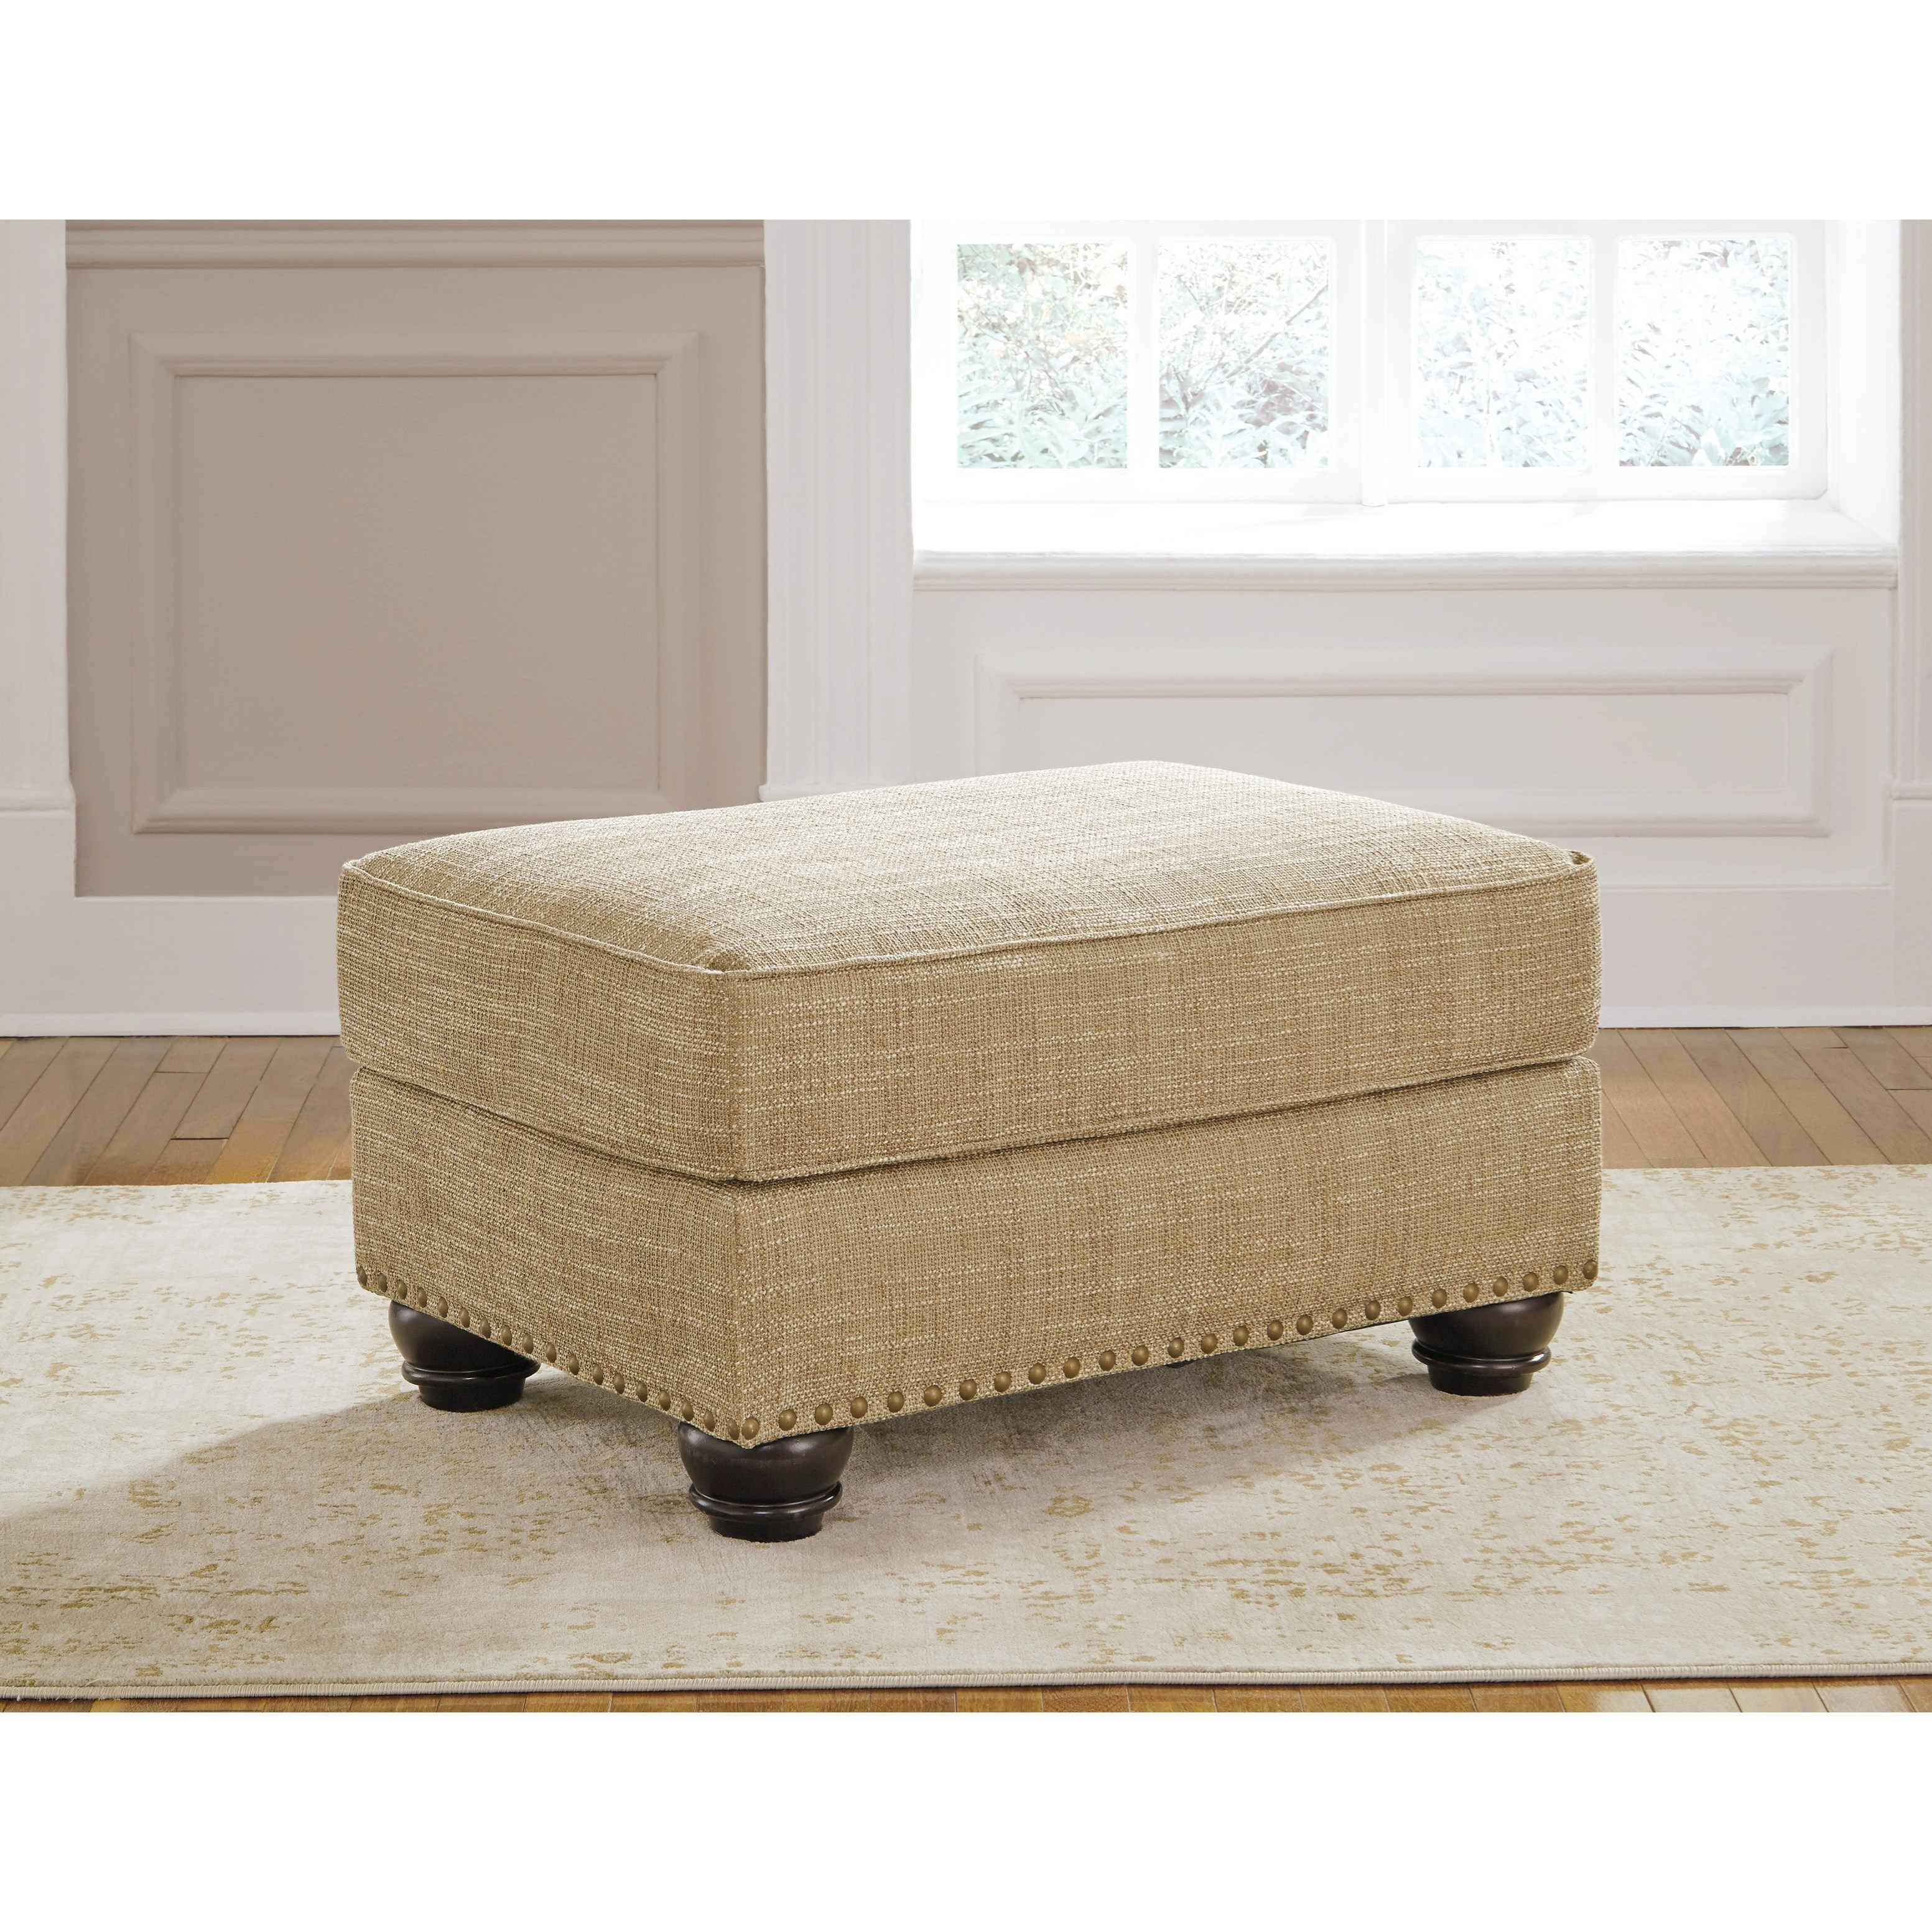 Benchcraft Candoro Ottoman - Item Number: 1180614